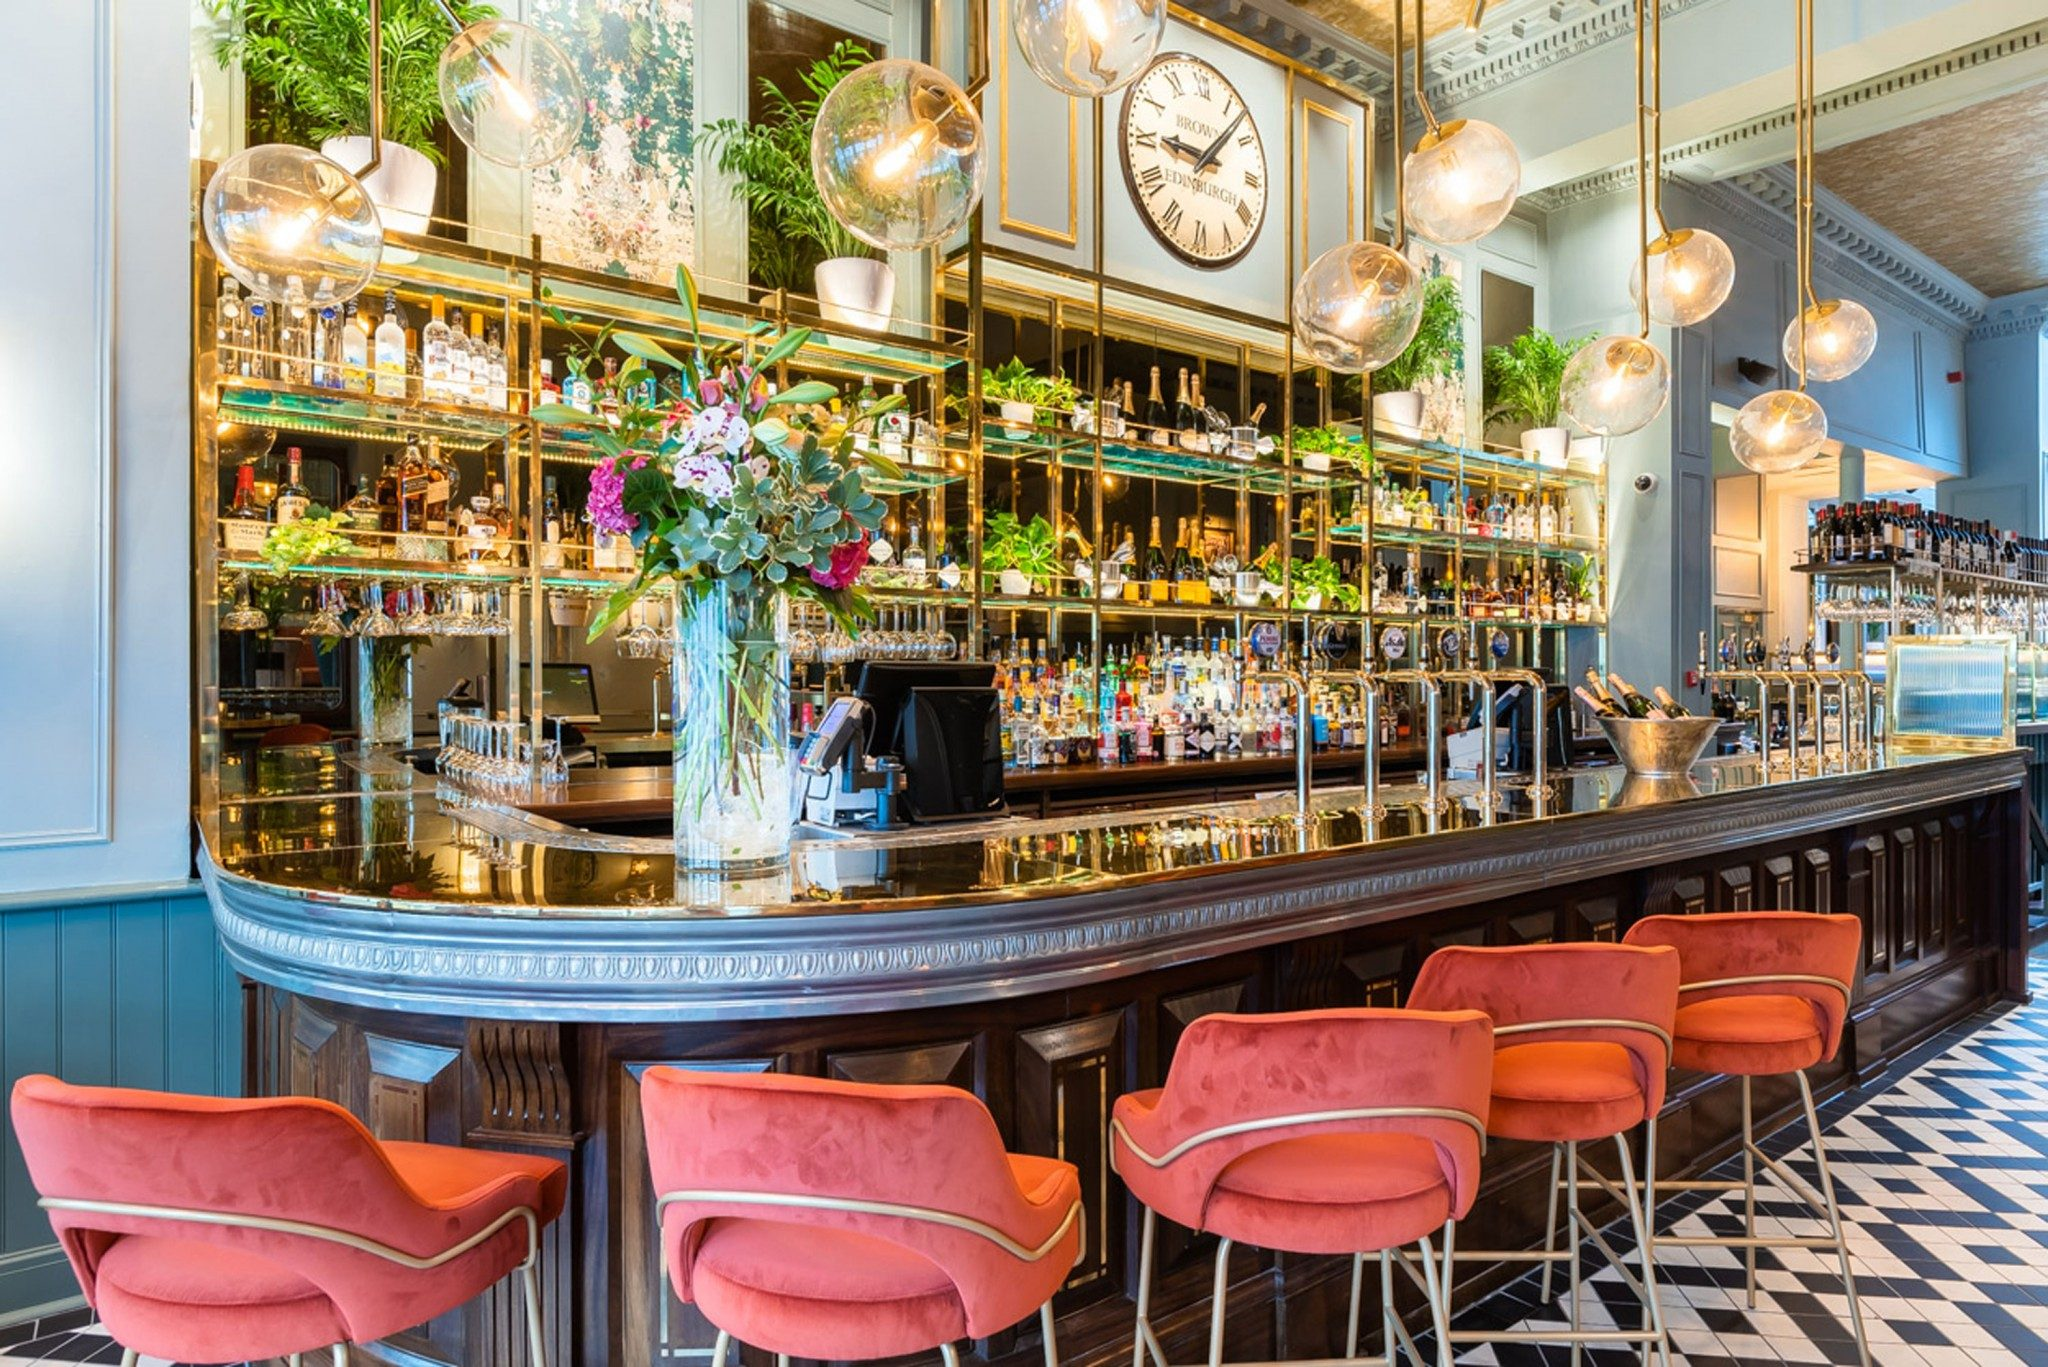 mackenzie wheeler area restaurant and pub architects and interior designers based in shoreditch london specializing in edinburgh new town building conservation and restoration